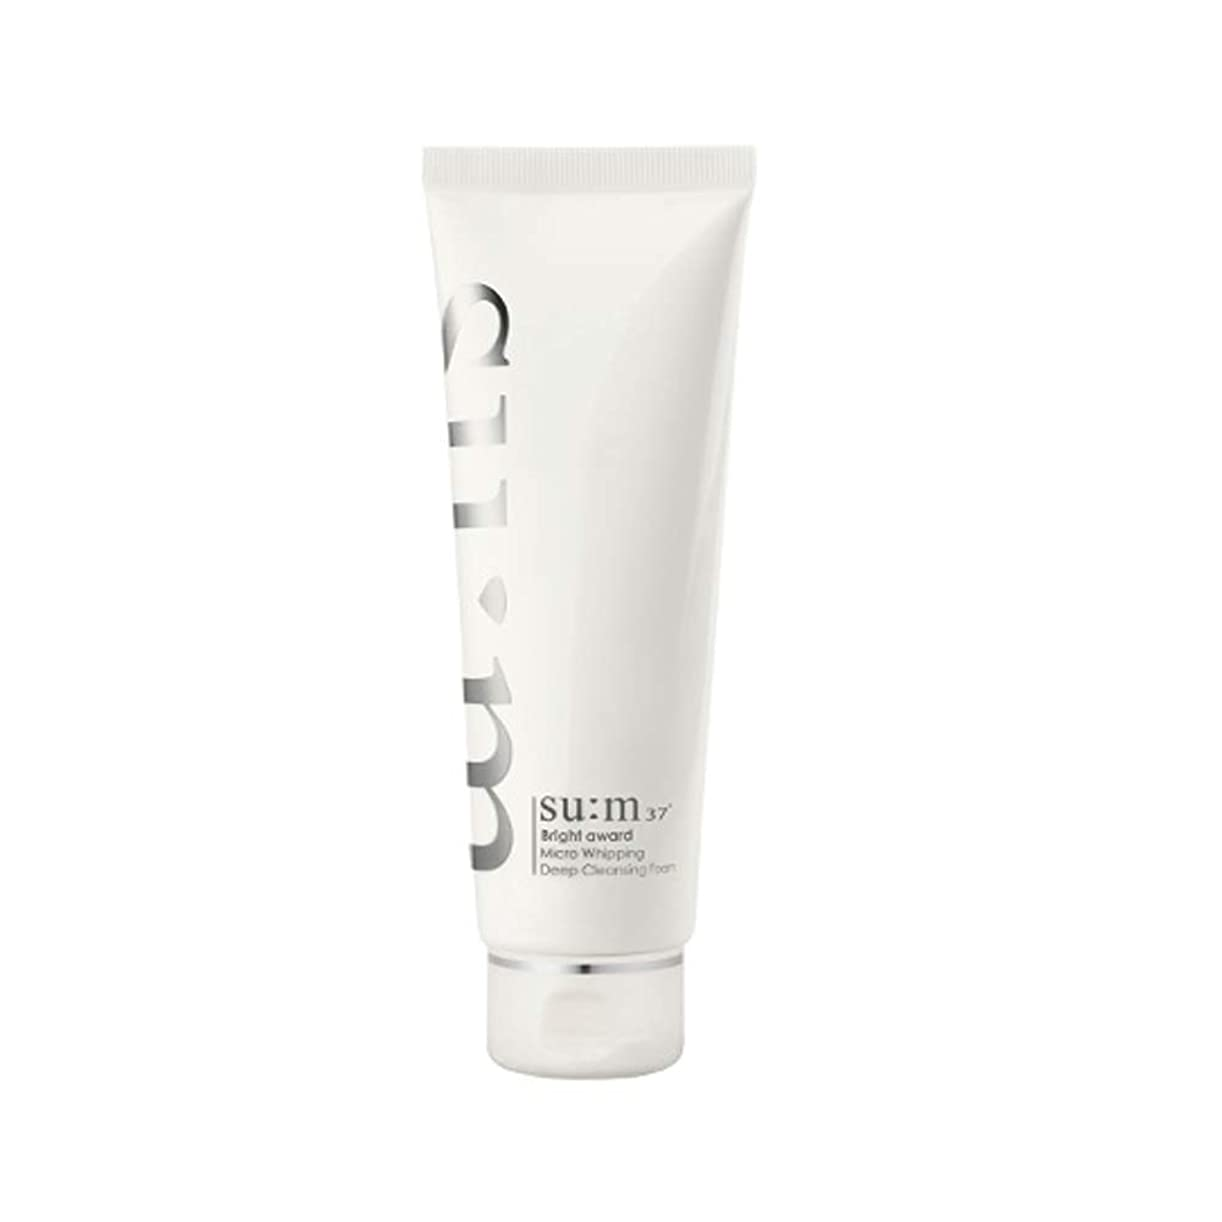 散文別の耕す[su:m37/スム37°] SUM37 Bright Award Micro Whipping Deep Cleansing Foam(並行輸入品)